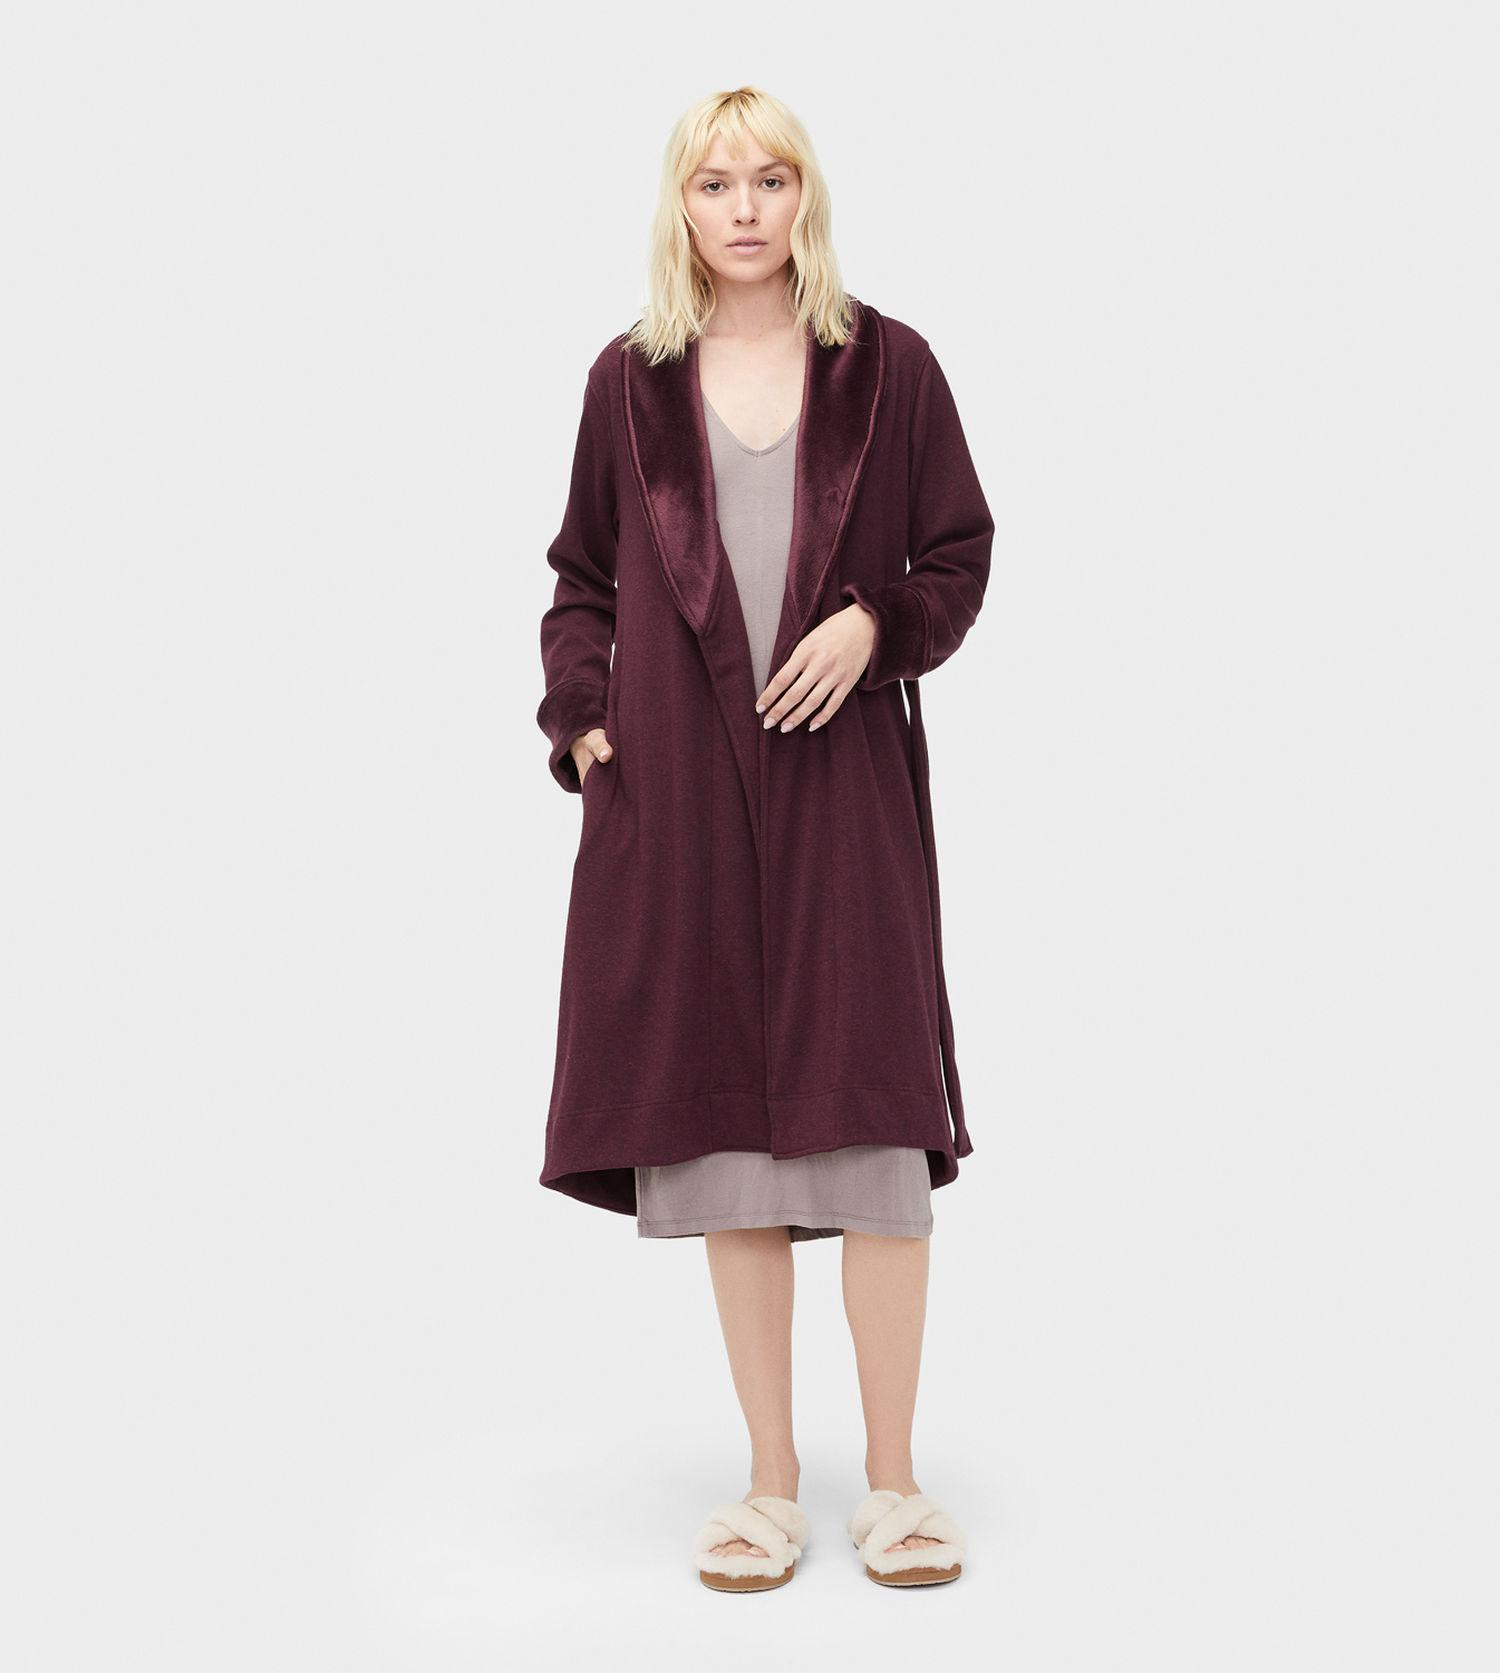 edb71a9c06 Lyst - Ugg Women s Share This Product Duffield Ii Robe in Purple